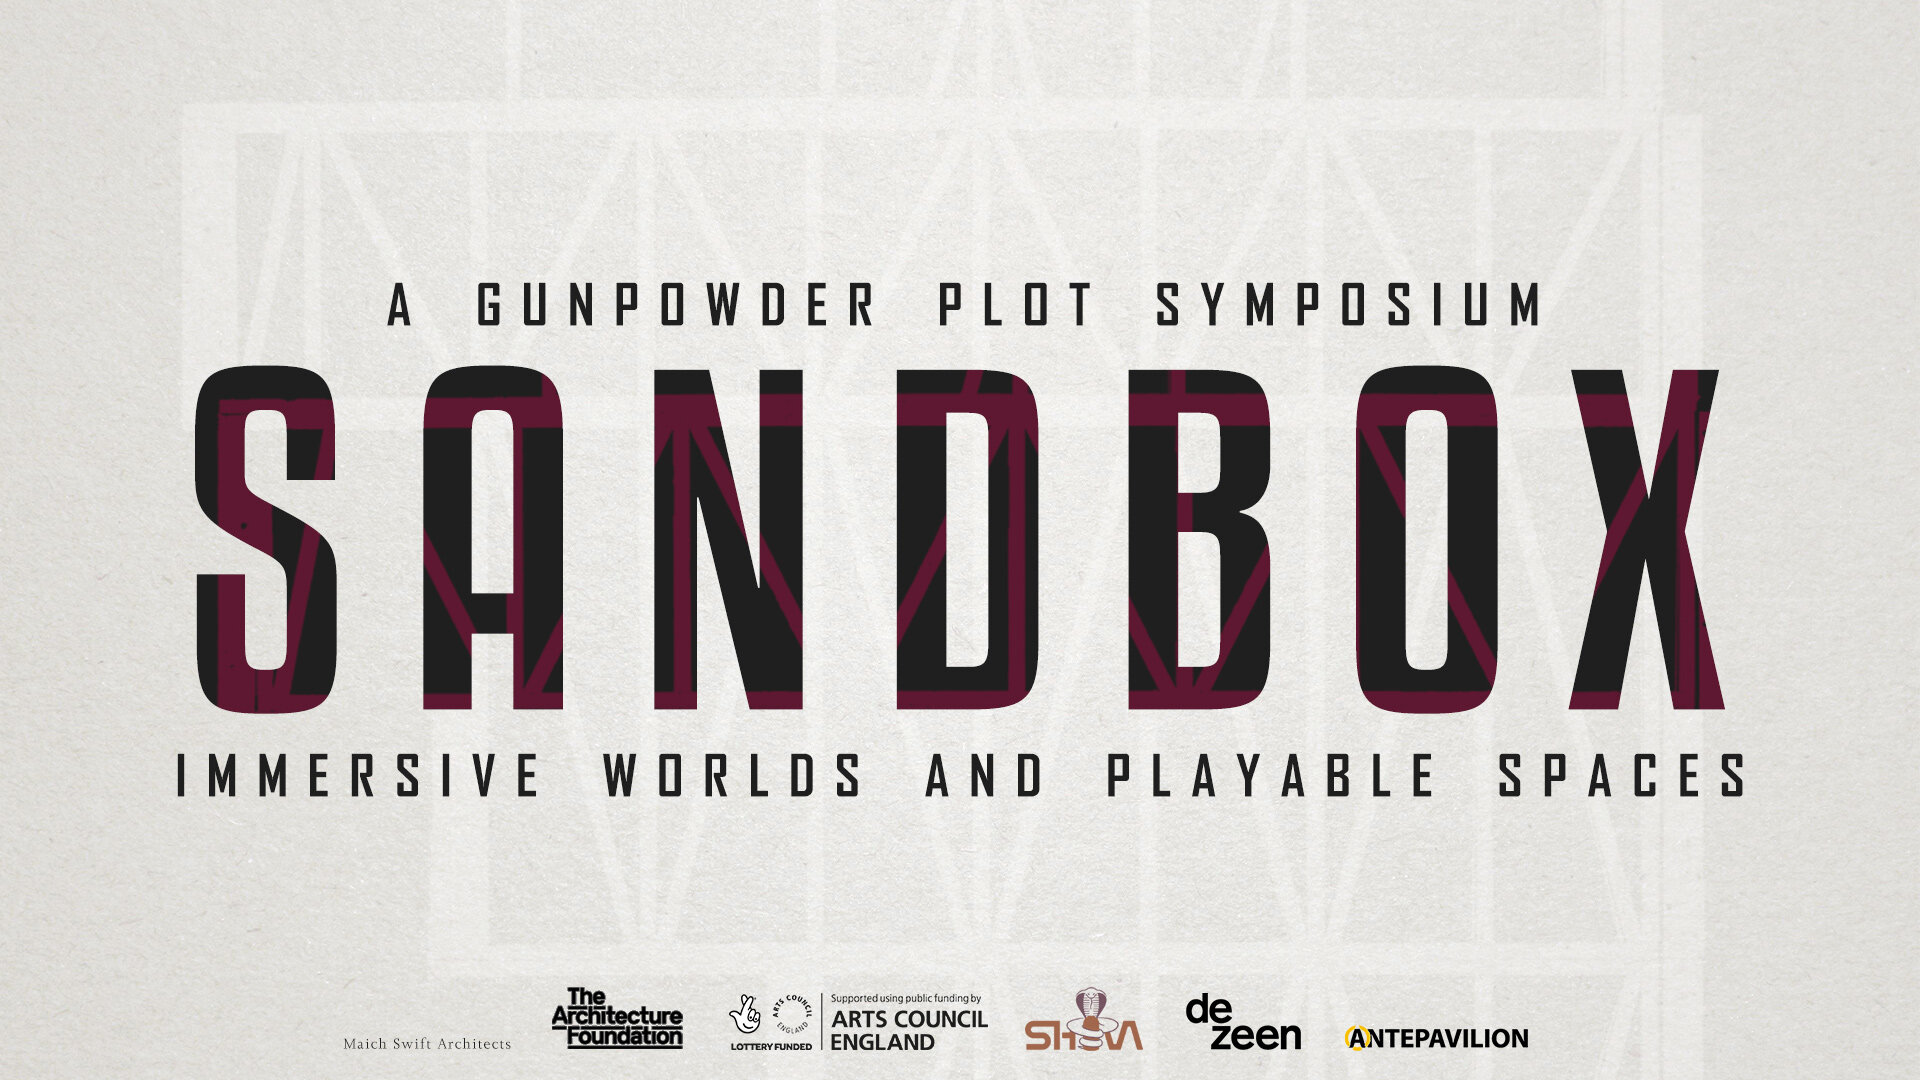 The UK's network for interactive and immersive industries, The Gunpowder Plot, returns with a baNG - SANDBOX is a two day symposium aiming to inspire thinking around designing immersive worlds, interactive experiences and playable spaces.